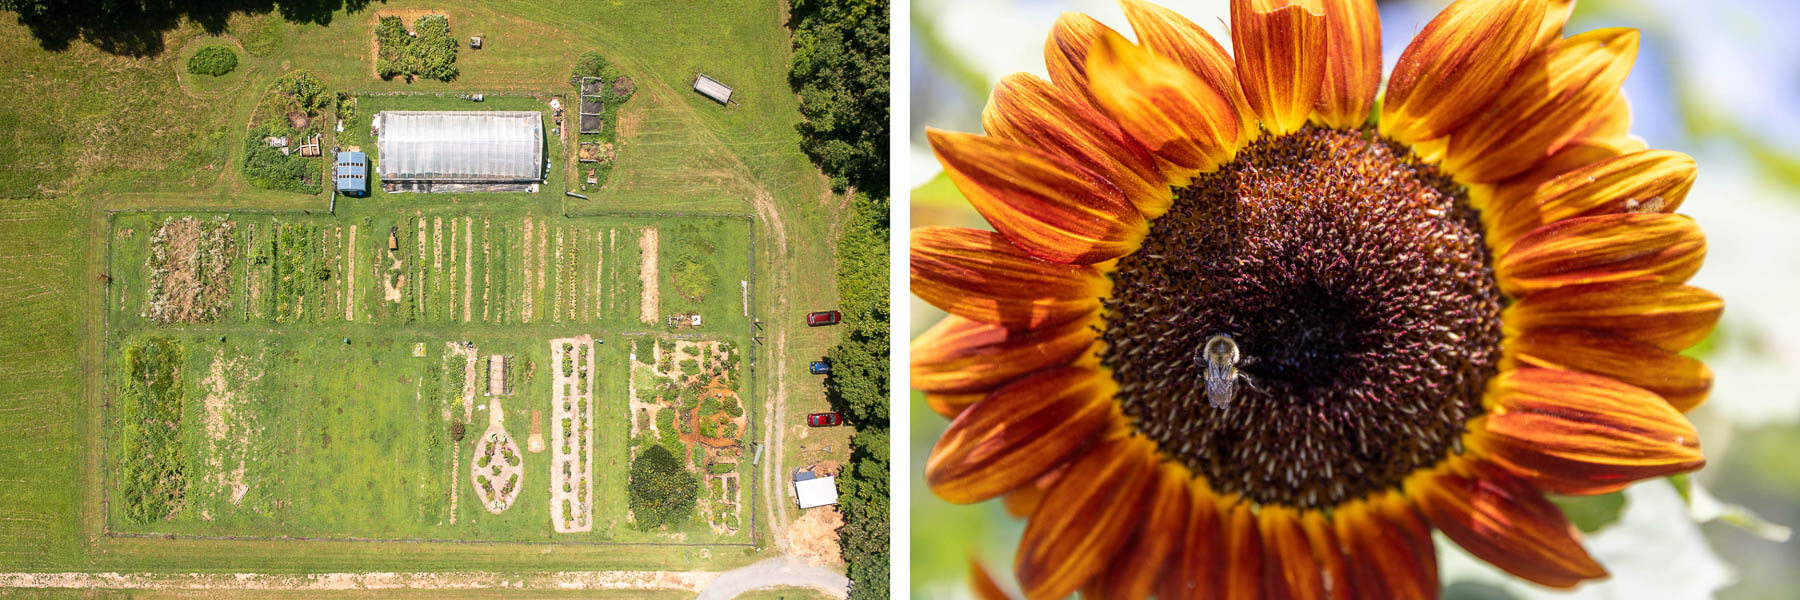 An aerial view of the community farm and a sunflower attracting a bee